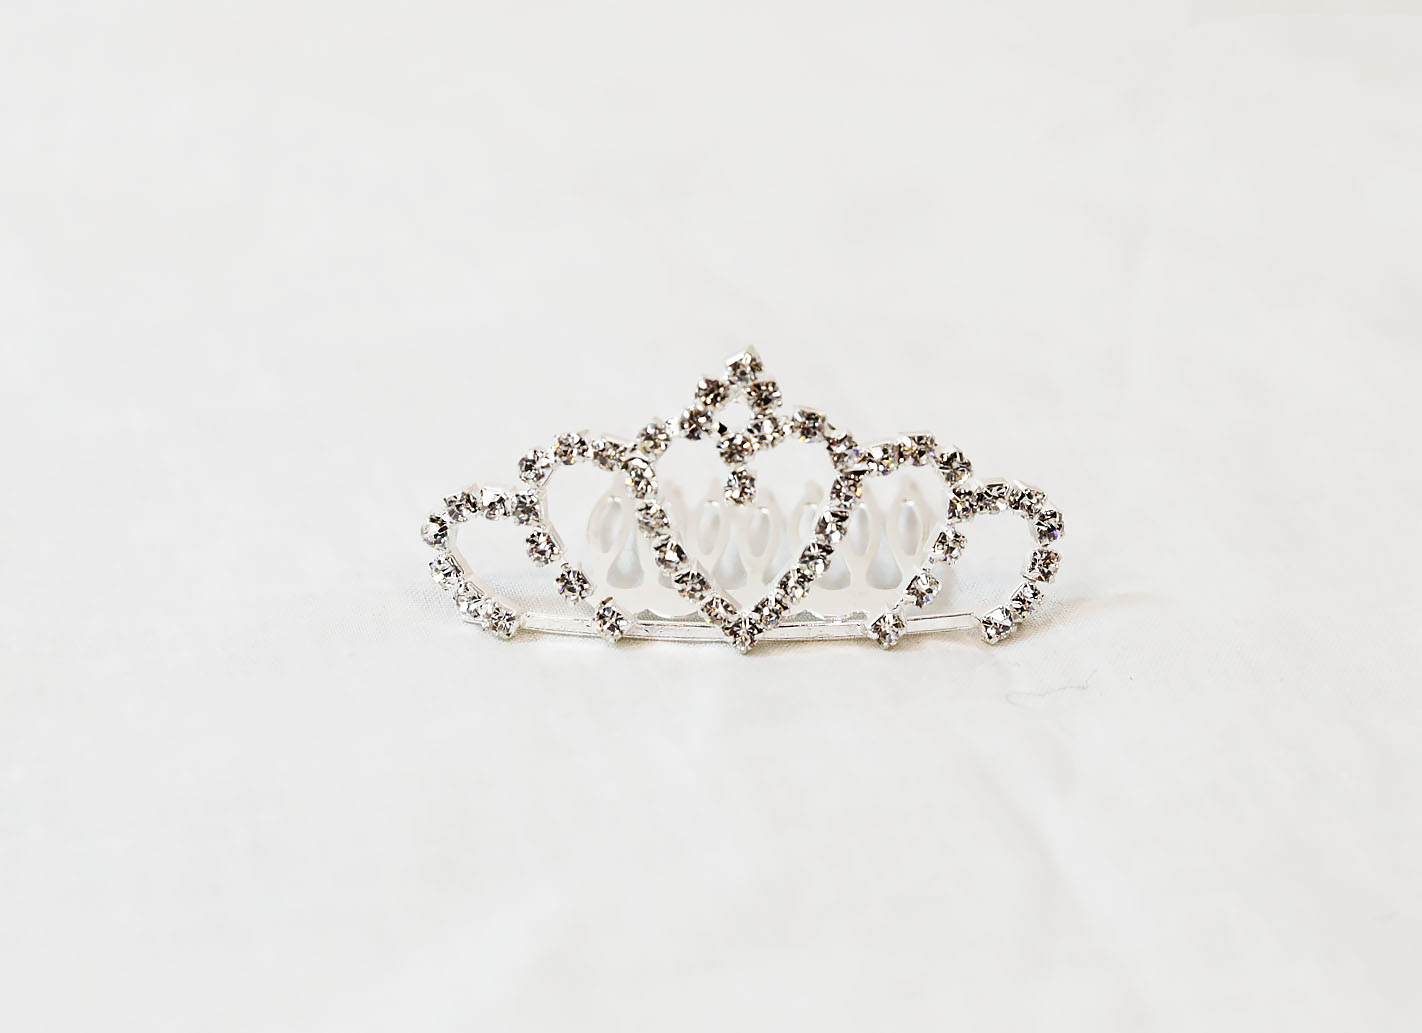 This Silver Heart Child's Tiara Comb